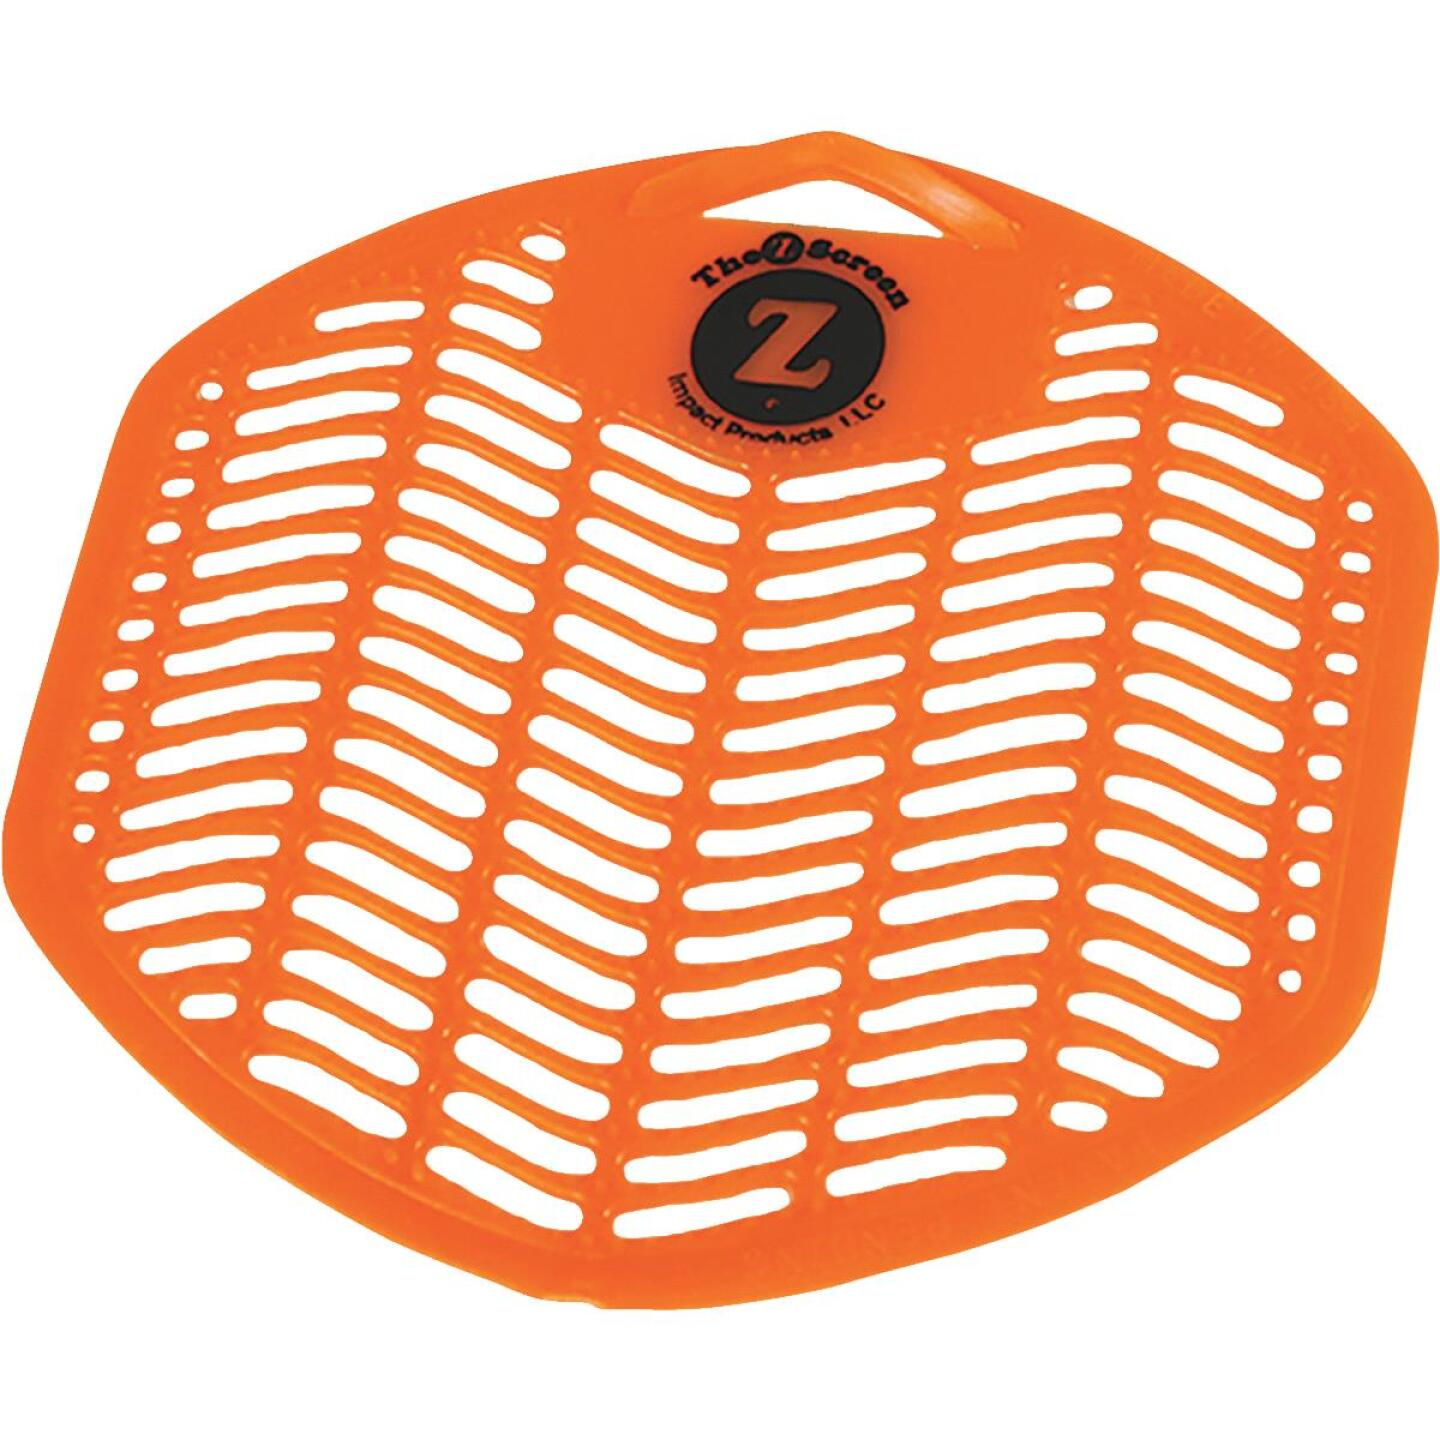 Impact Z-Screen Urinal Screen, Berry Scent Image 1